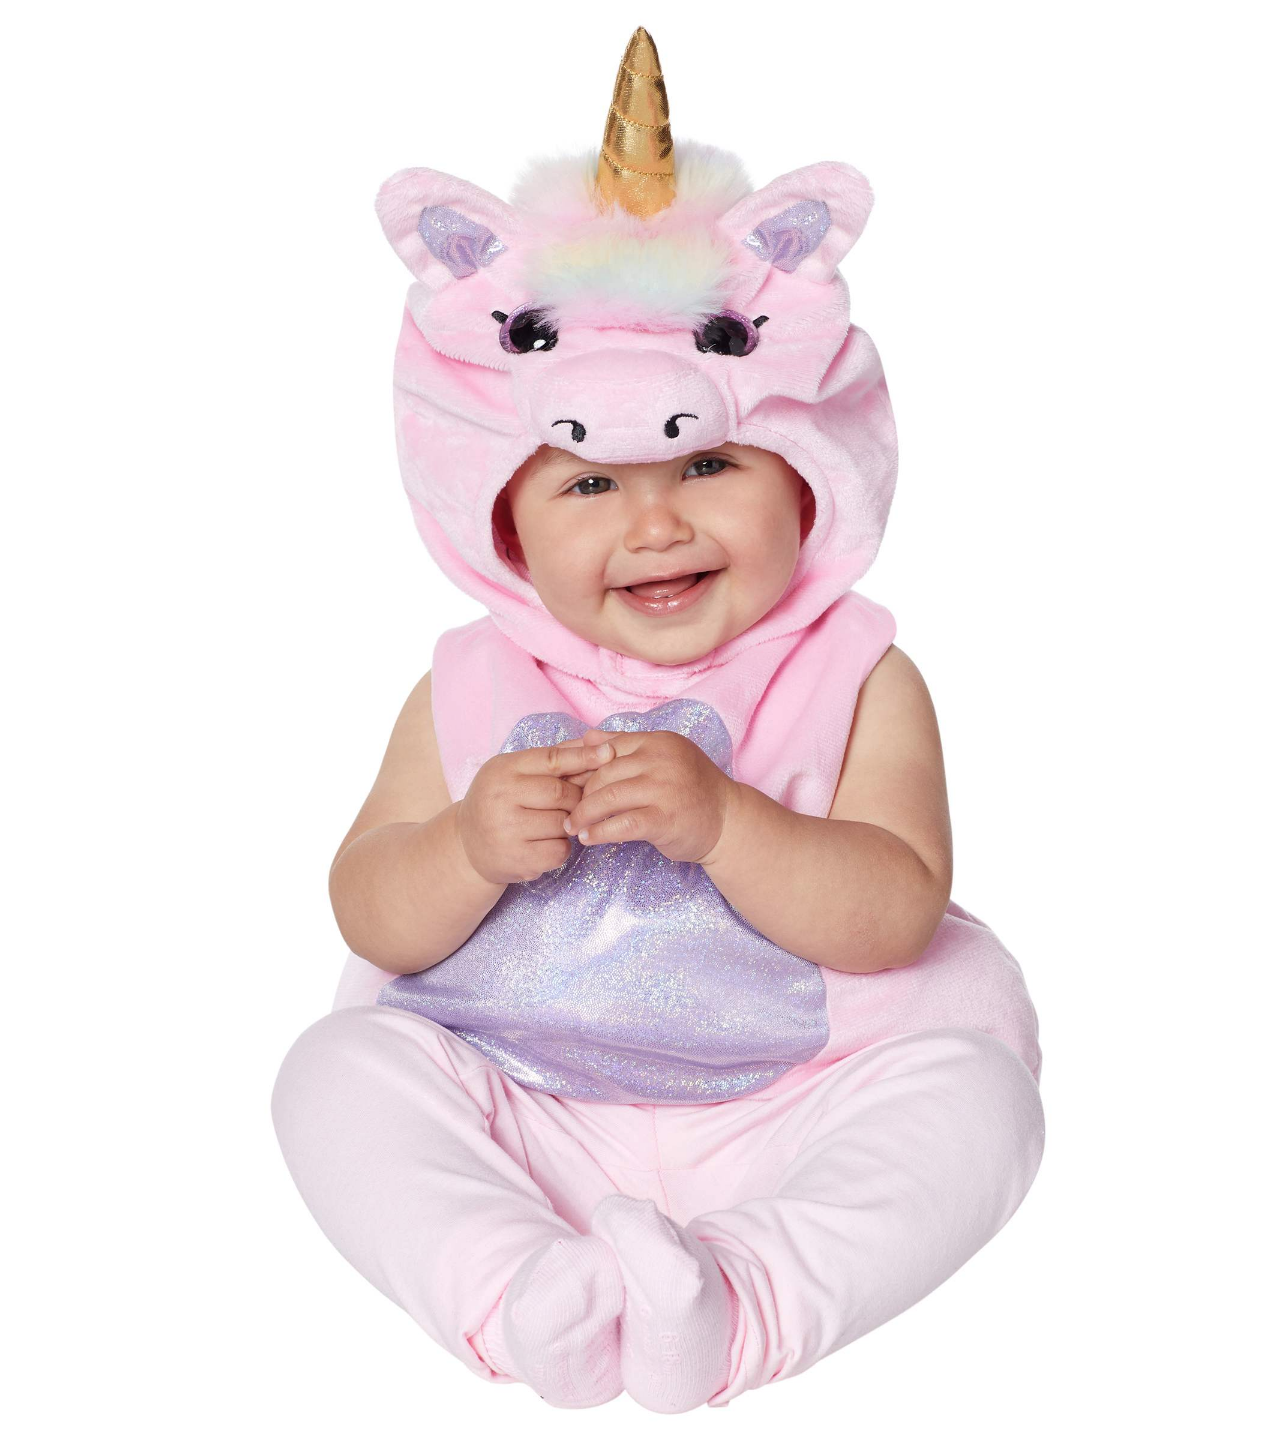 32 cute baby halloween costumes for boys girls diy costume ideas for infants